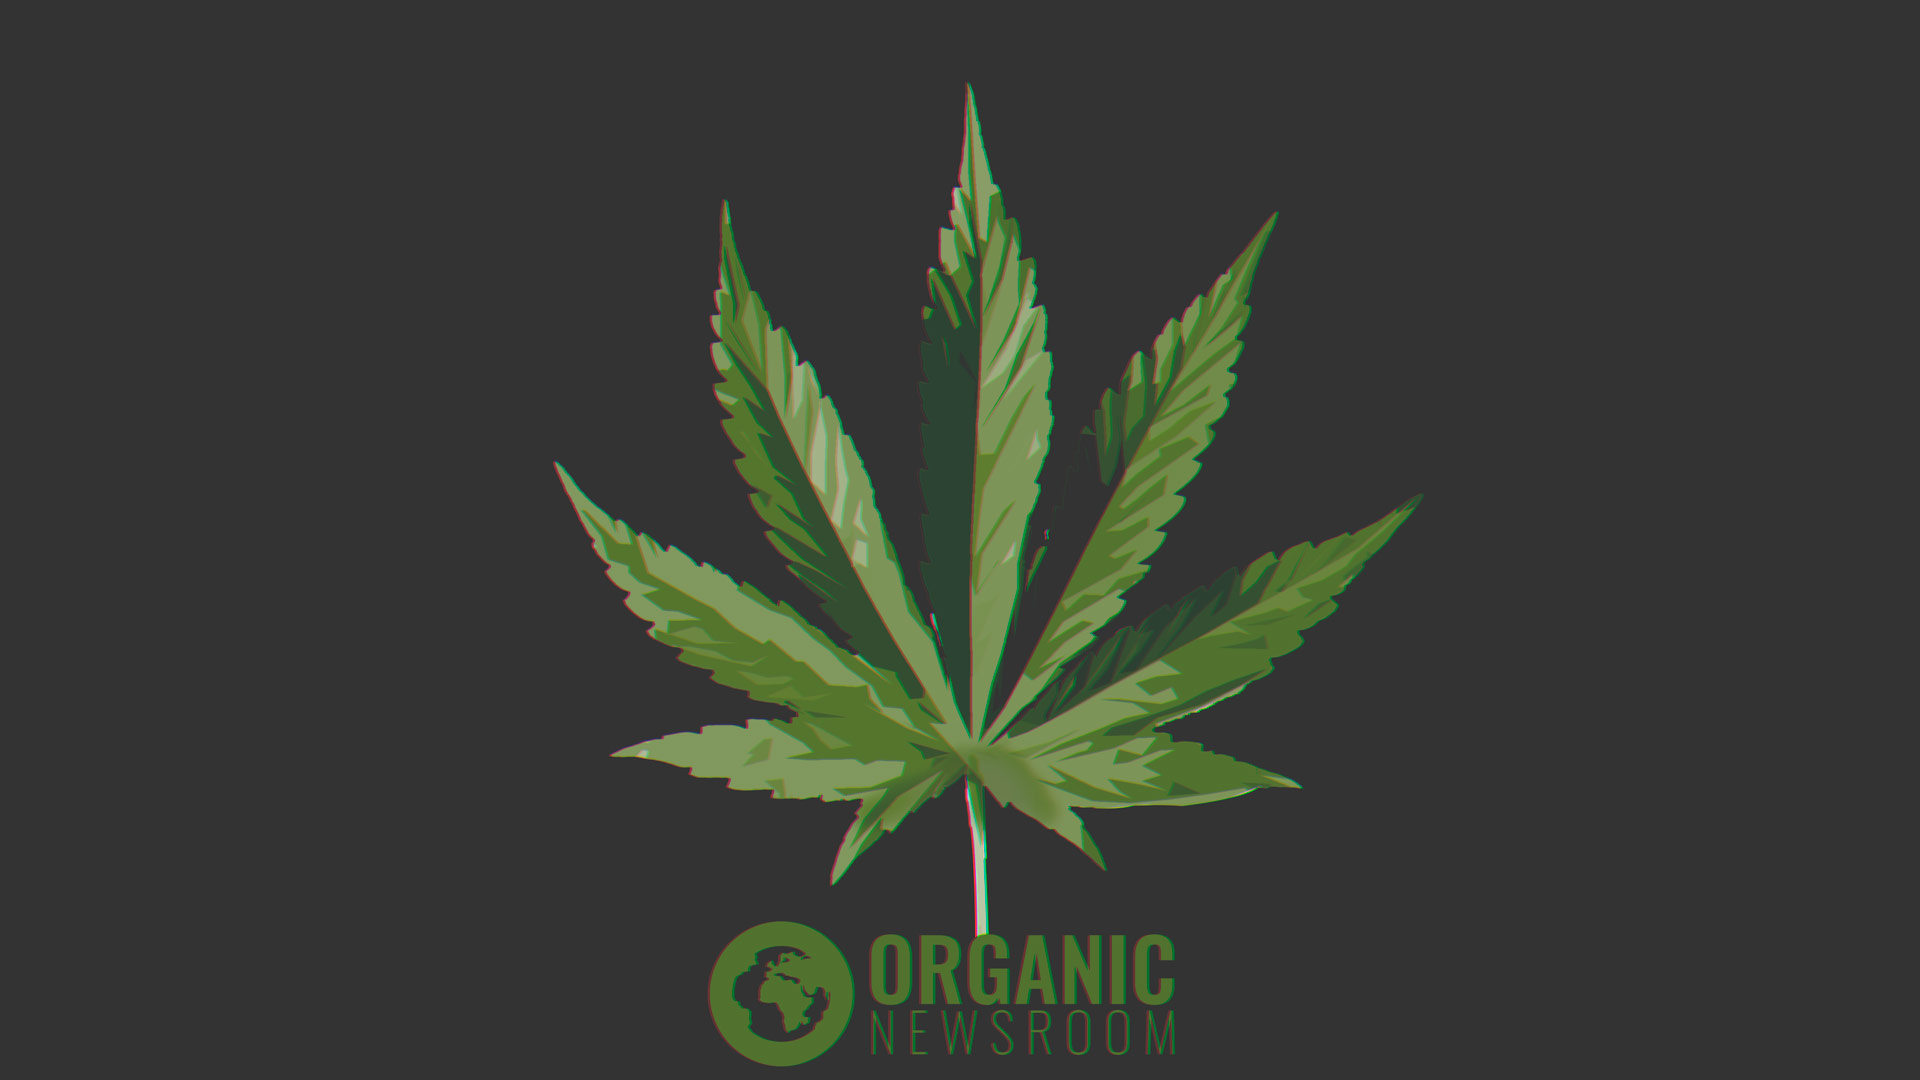 0080-CBD-CANNABIS-OIL-ORGANIC-NEWSROOM-FEATURE